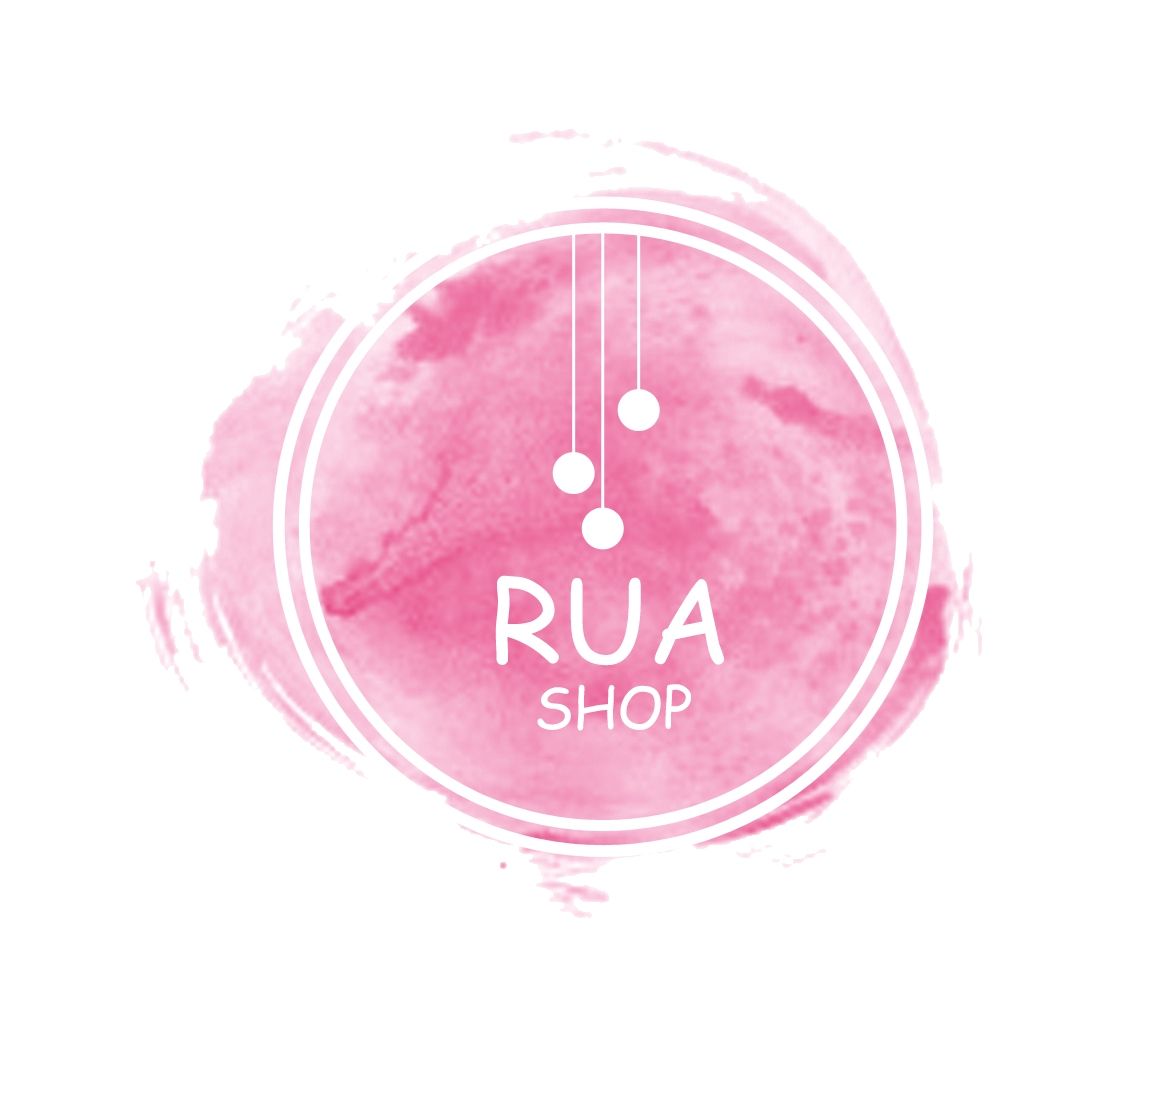 Rua Shop